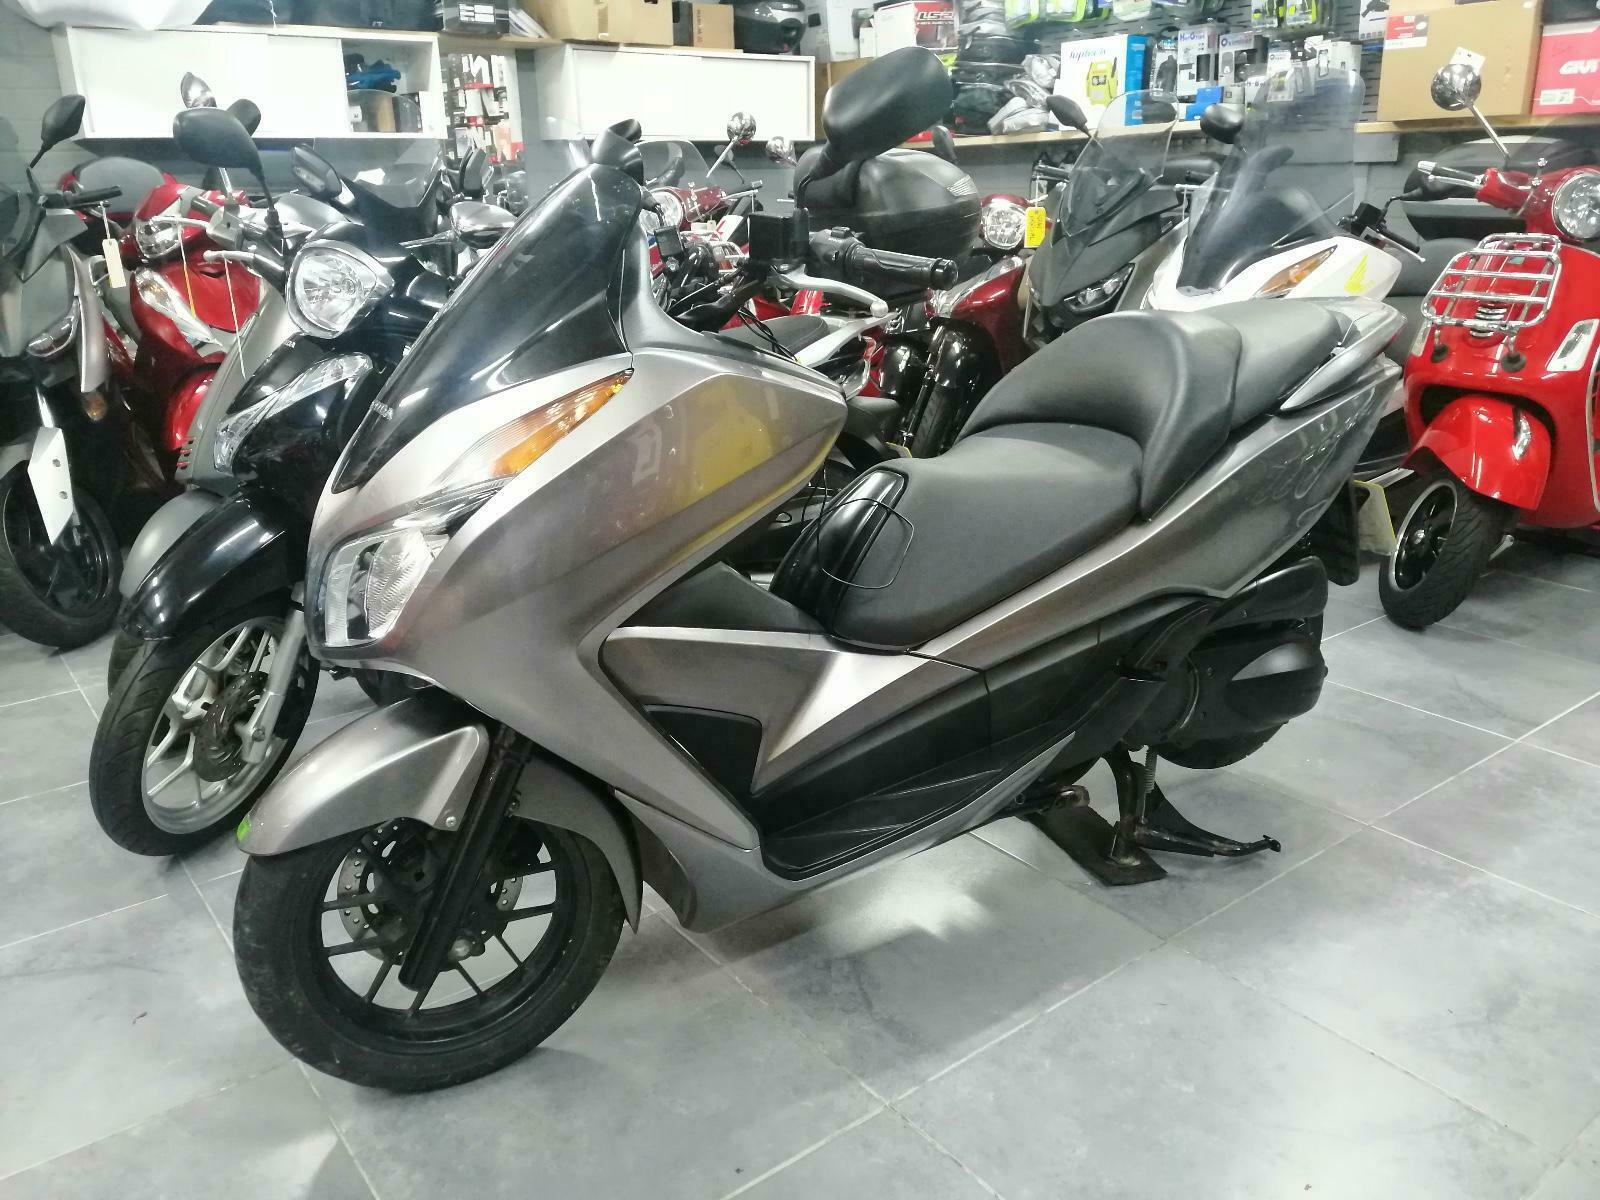 Honda Forza 300, Excellent condition with low mileage